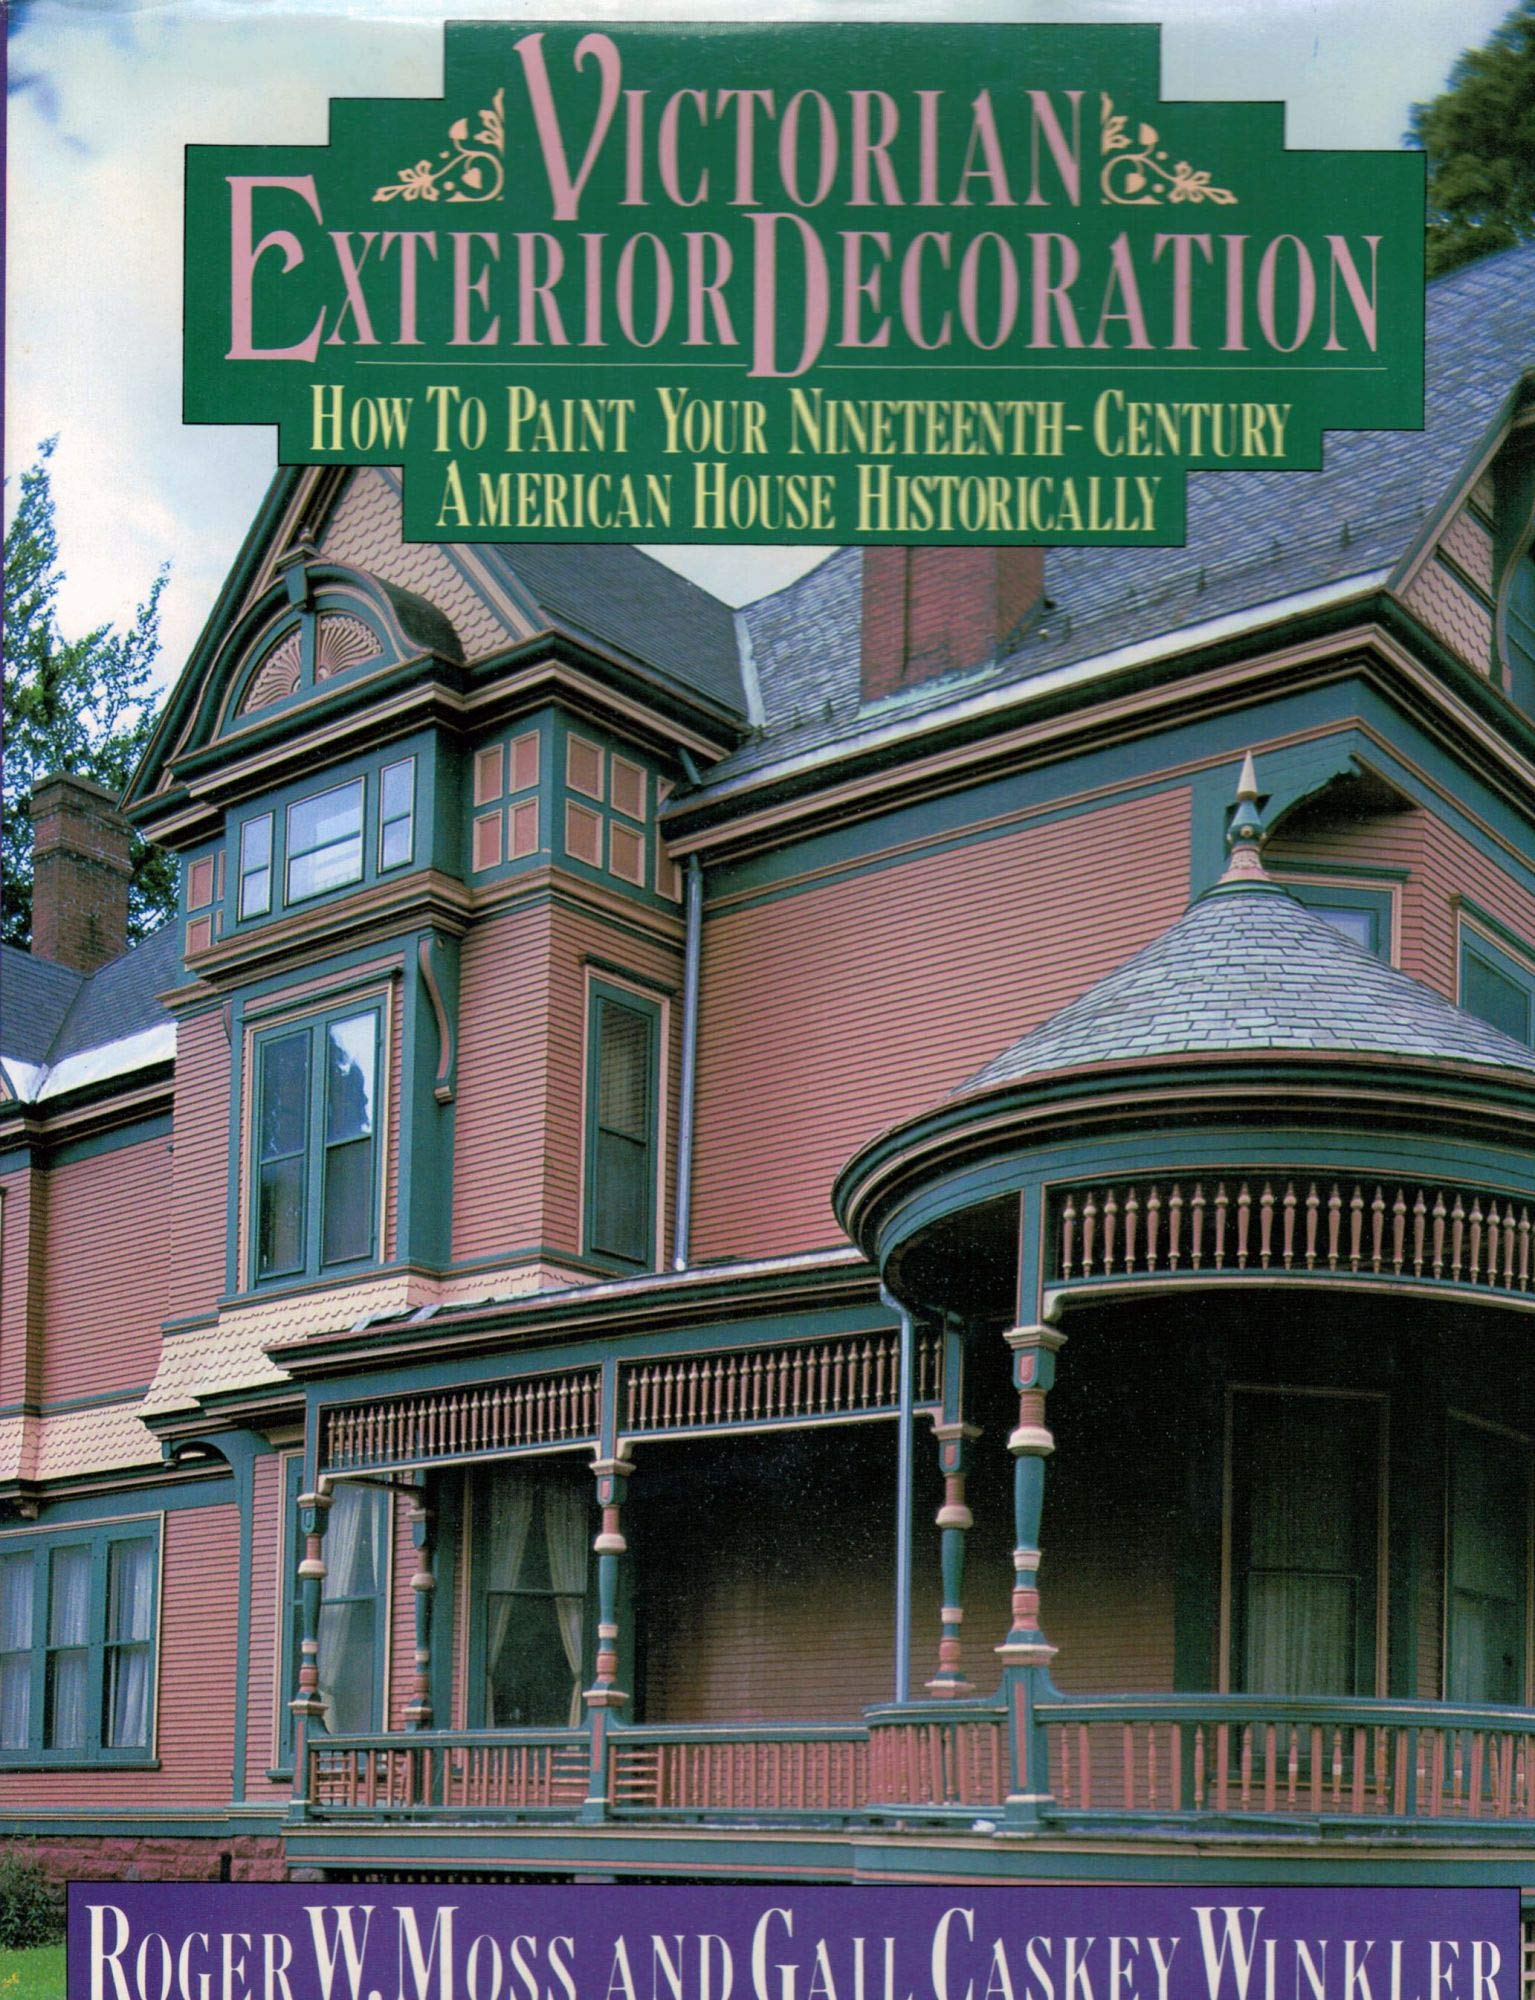 Victorian Exterior Decoration How To Paint Your Nineteenth Century American House Historically Moss Roger W Winkler Gail Caskey 9780805003765 Amazon Com Books